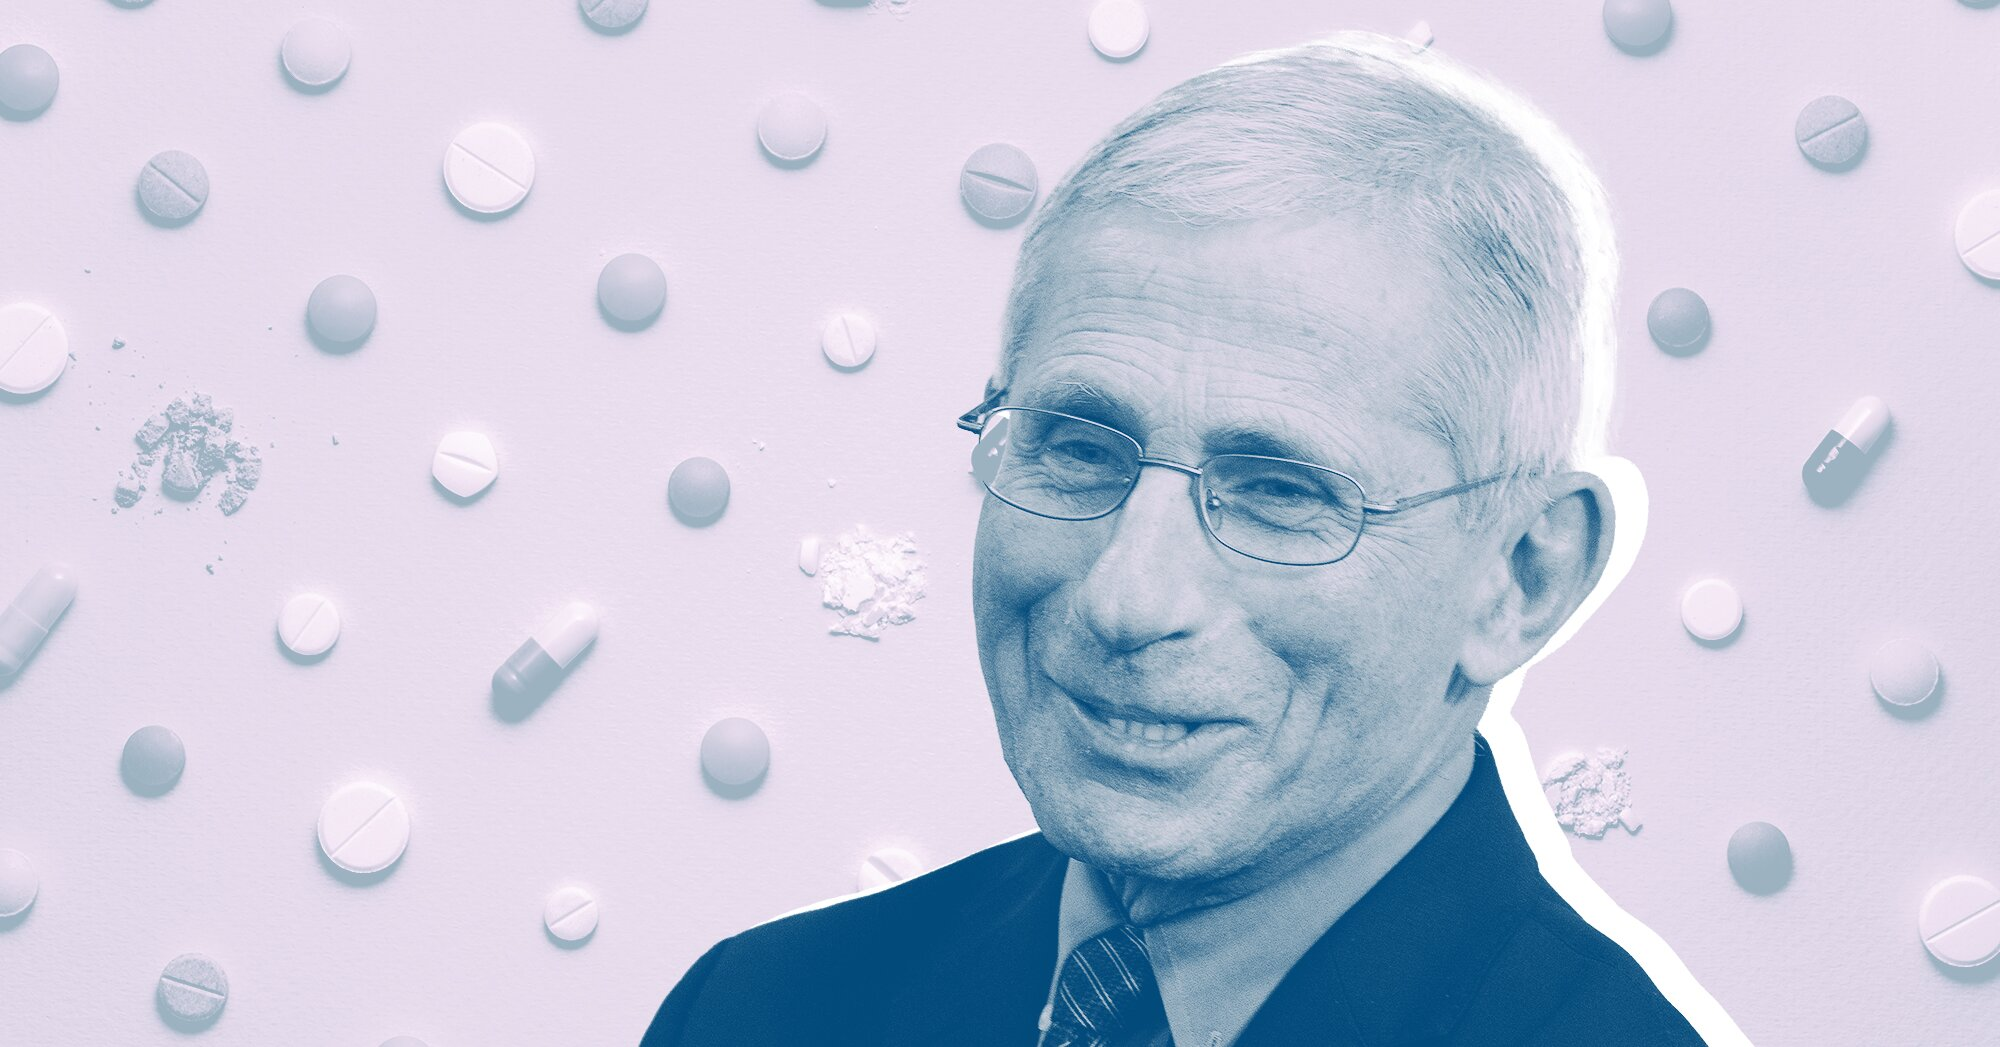 Dr. Fauci Recommends Taking These 2 Vitamins to Help Boost Your Immune System